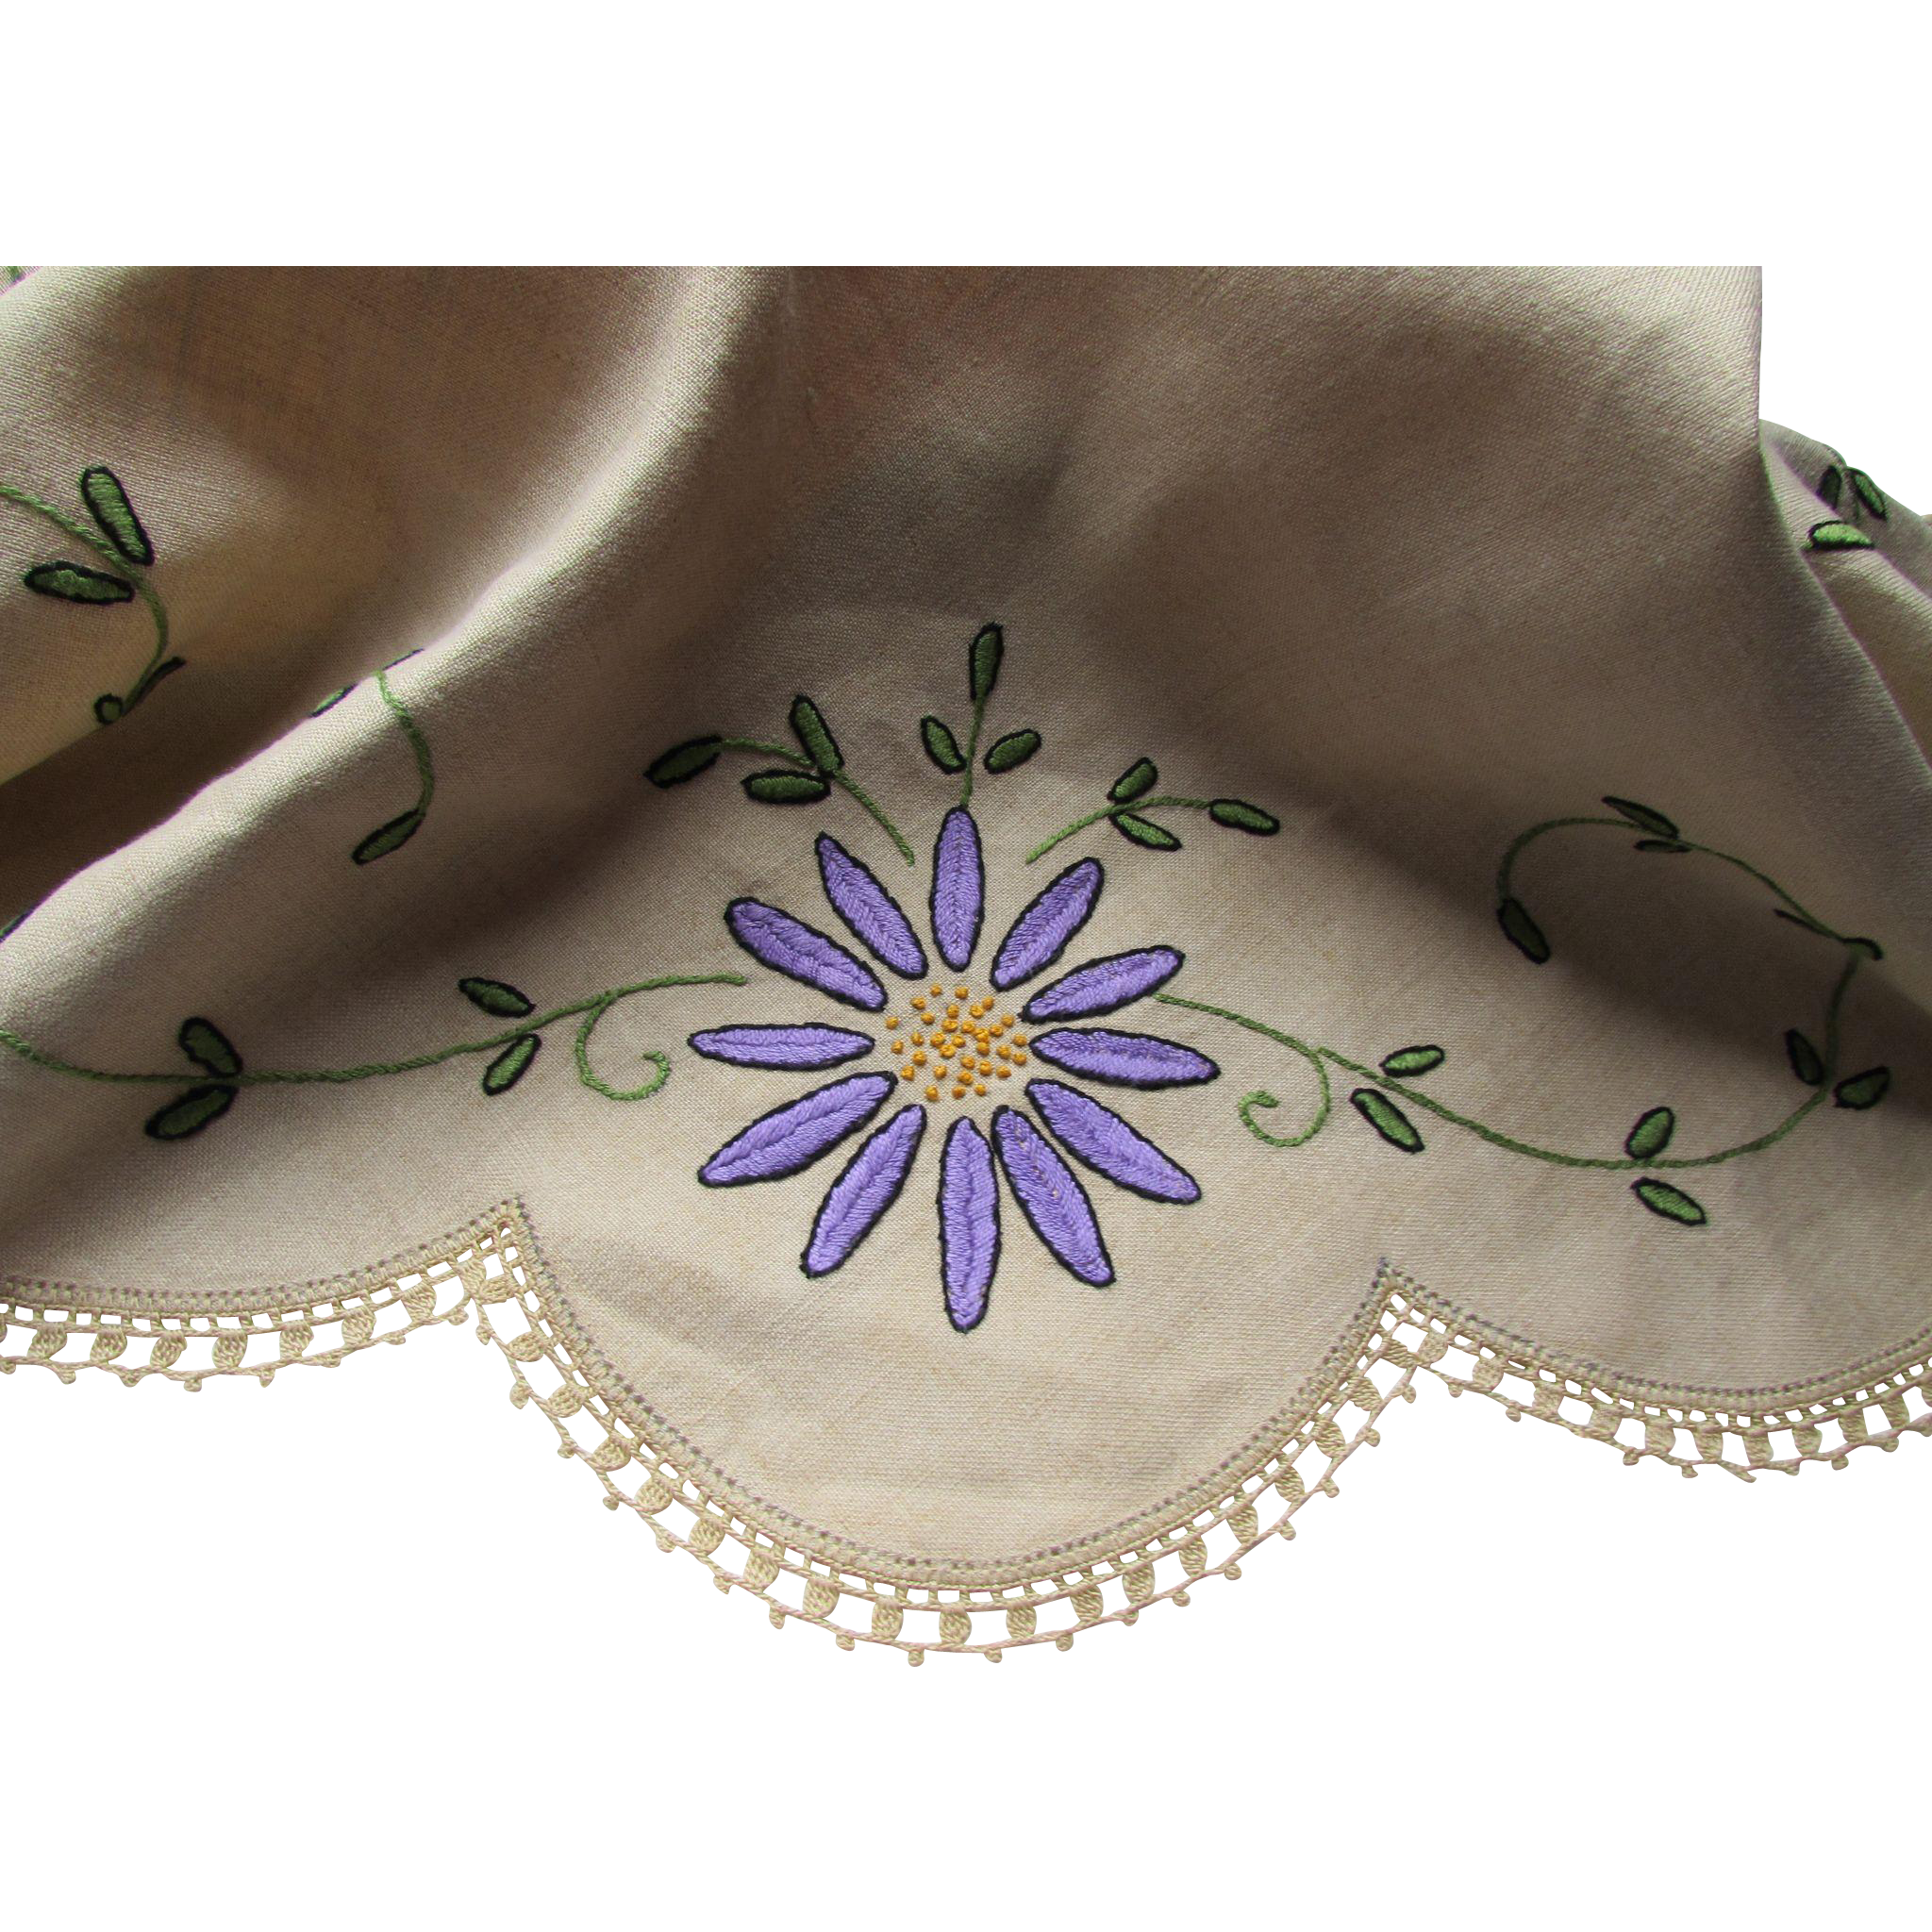 Ecru Linen Table Round Embroidered with Flowers and Vines